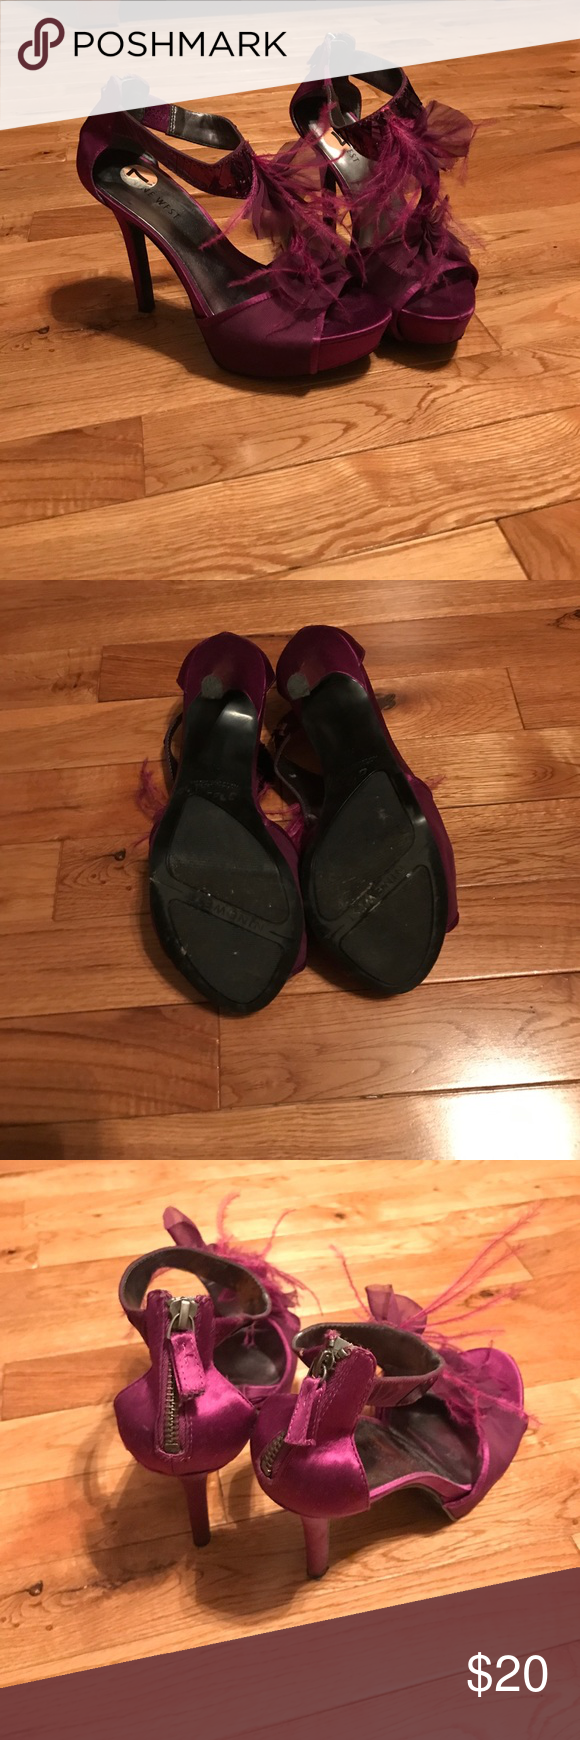 Nine West pumps Purple Nine West pumps size 7. With feather pieces. 4 1/2 inch heel with 1 inch platform. zipper up in the back. Very stylish. In good condition. Only worn two times. Nine West Shoes Heels